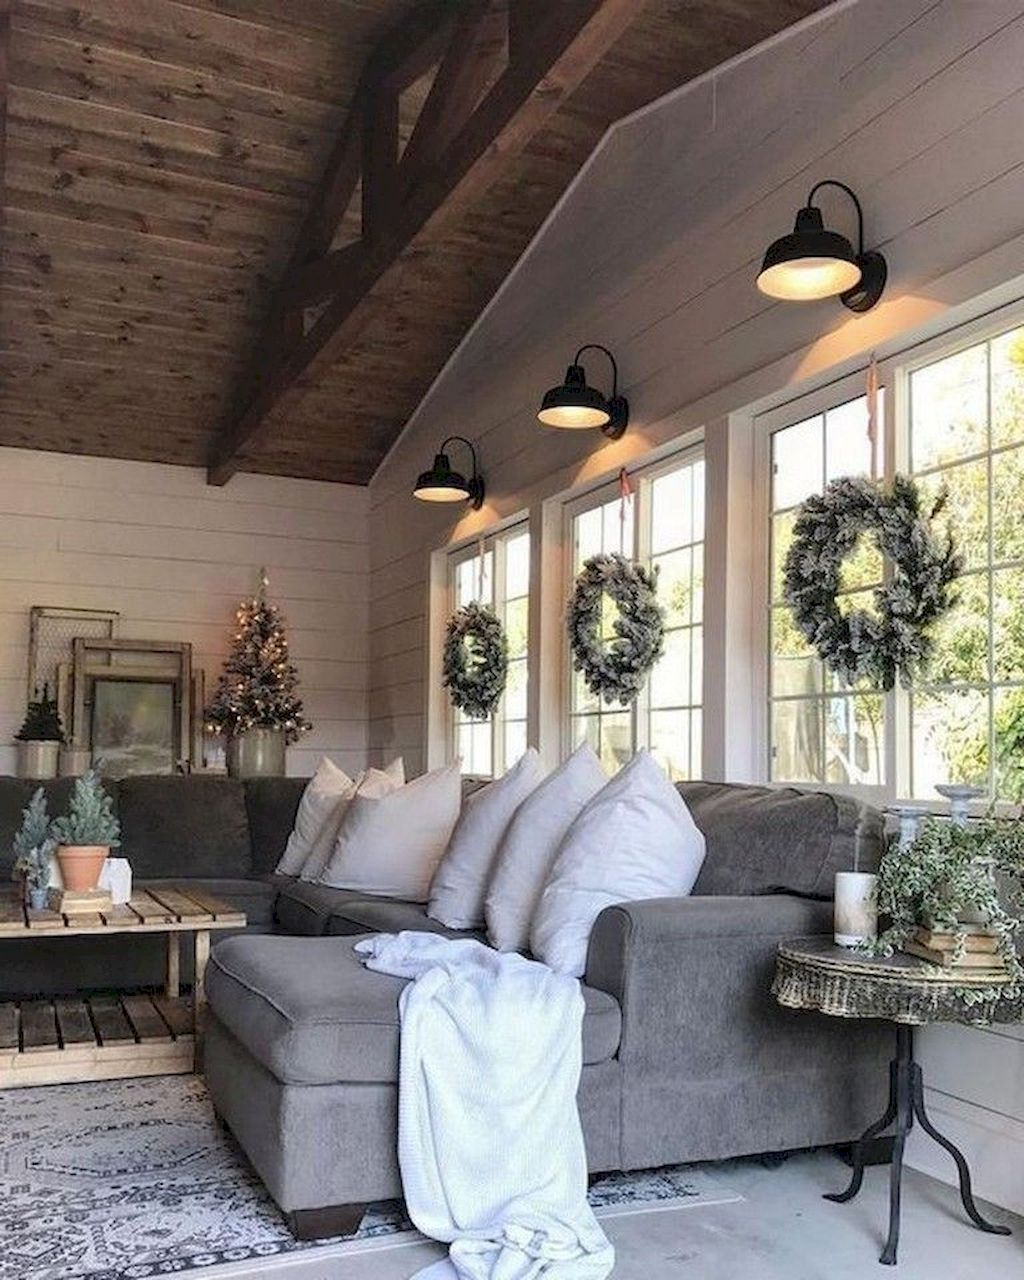 79 Cozy Modern Farmhouse Living Room Decor Ideas: 90 Cozy Farmhouse Living Room Rug Decor Ideas